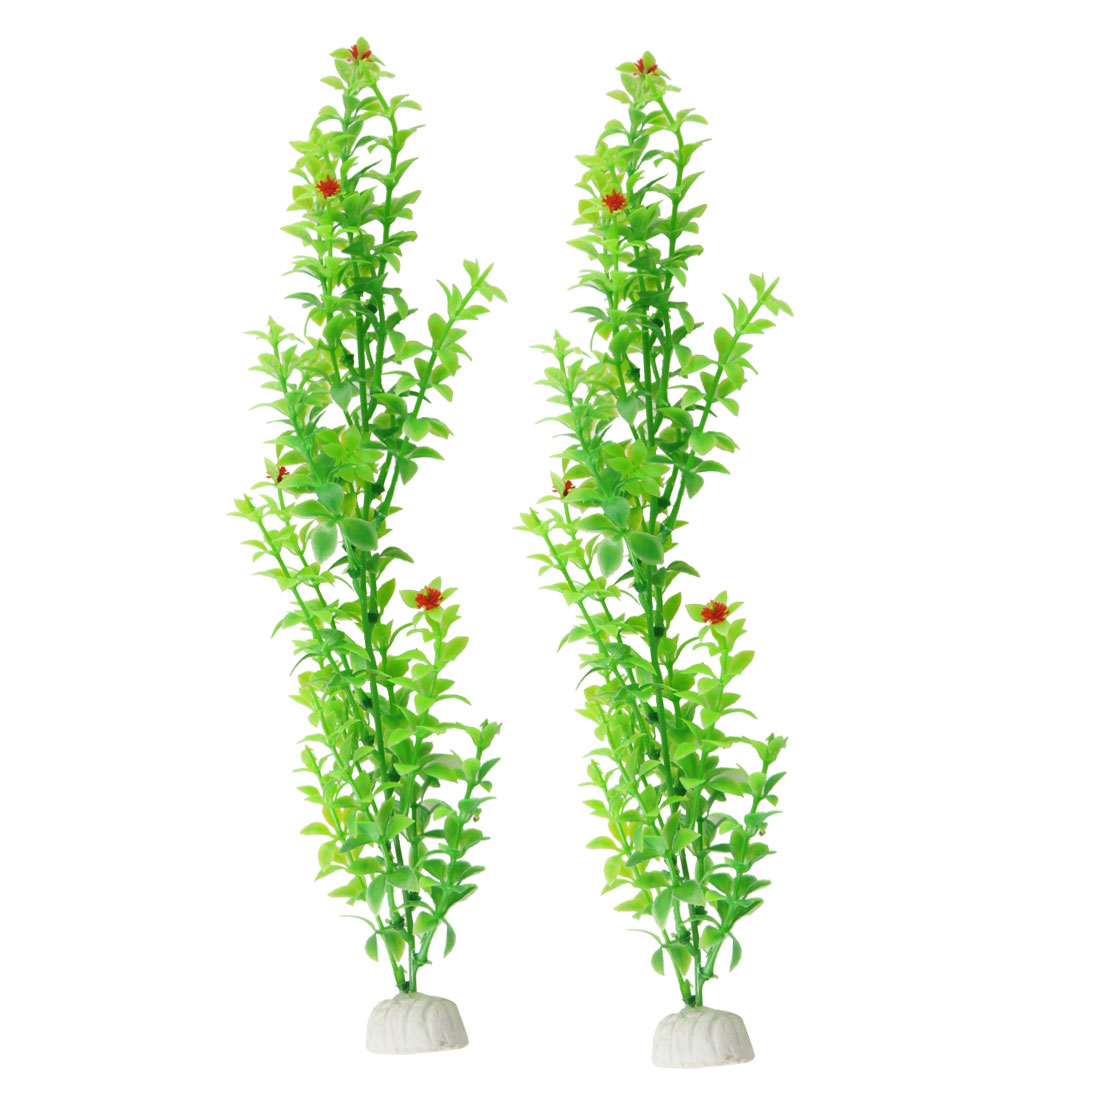 Ceramic Base Green Round Leaves Grass for Aquarium Decor 2 Pcs